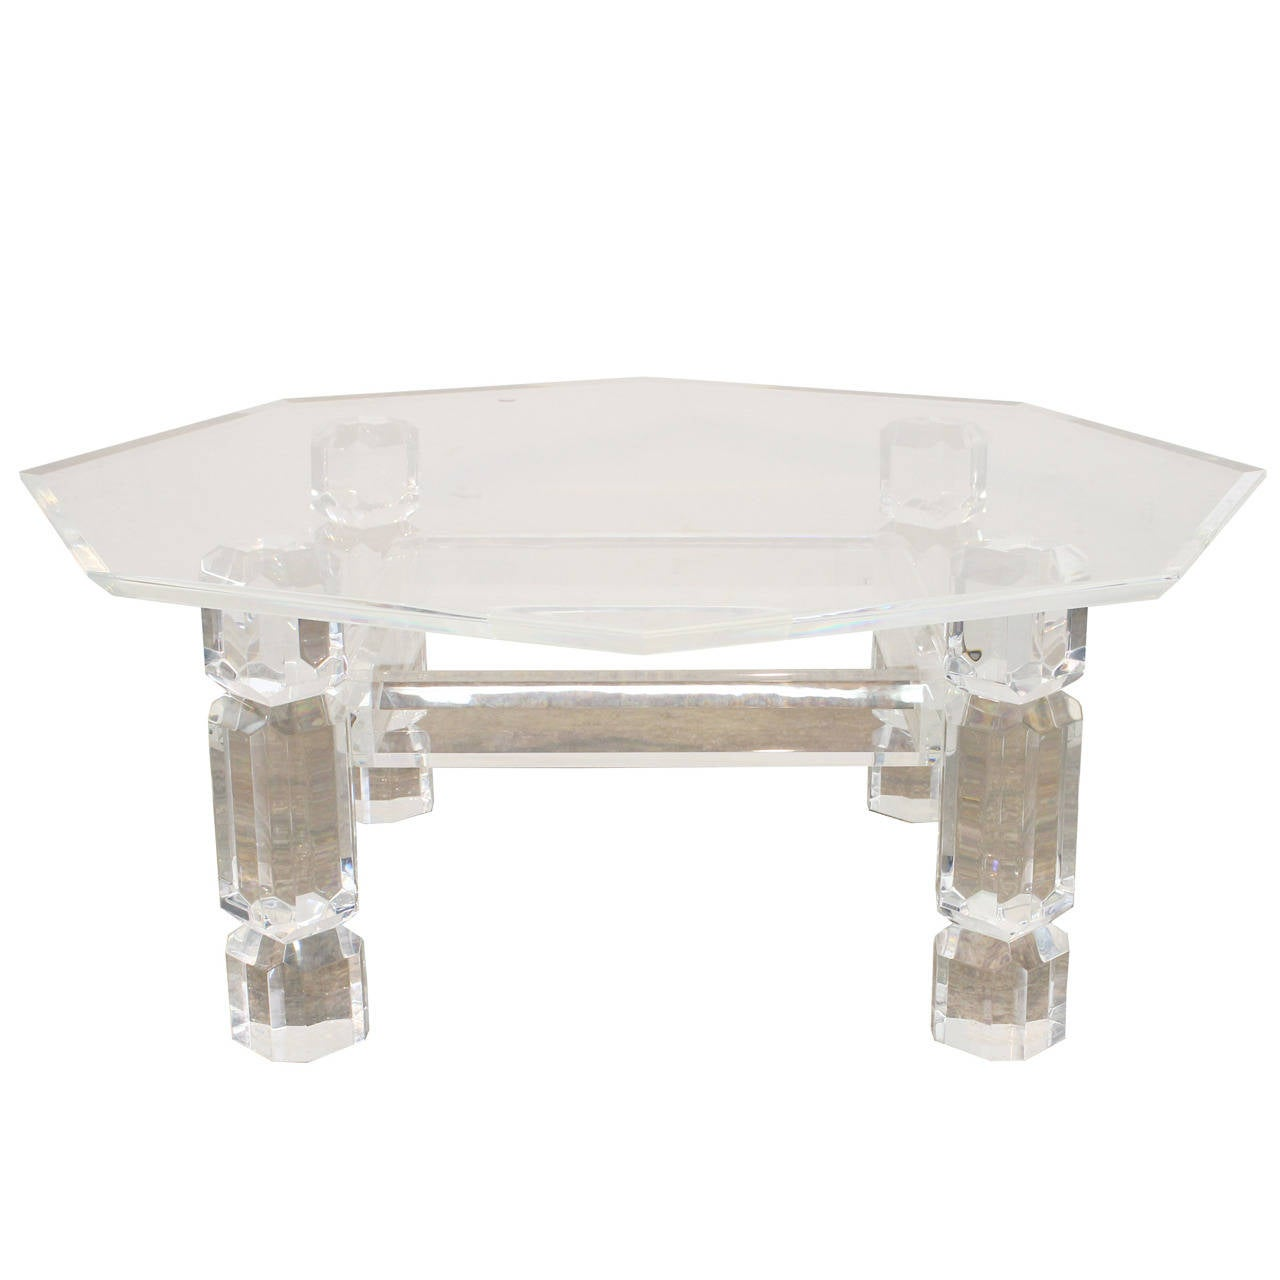 Lucite coffee table bing images Acrylic clear coffee table